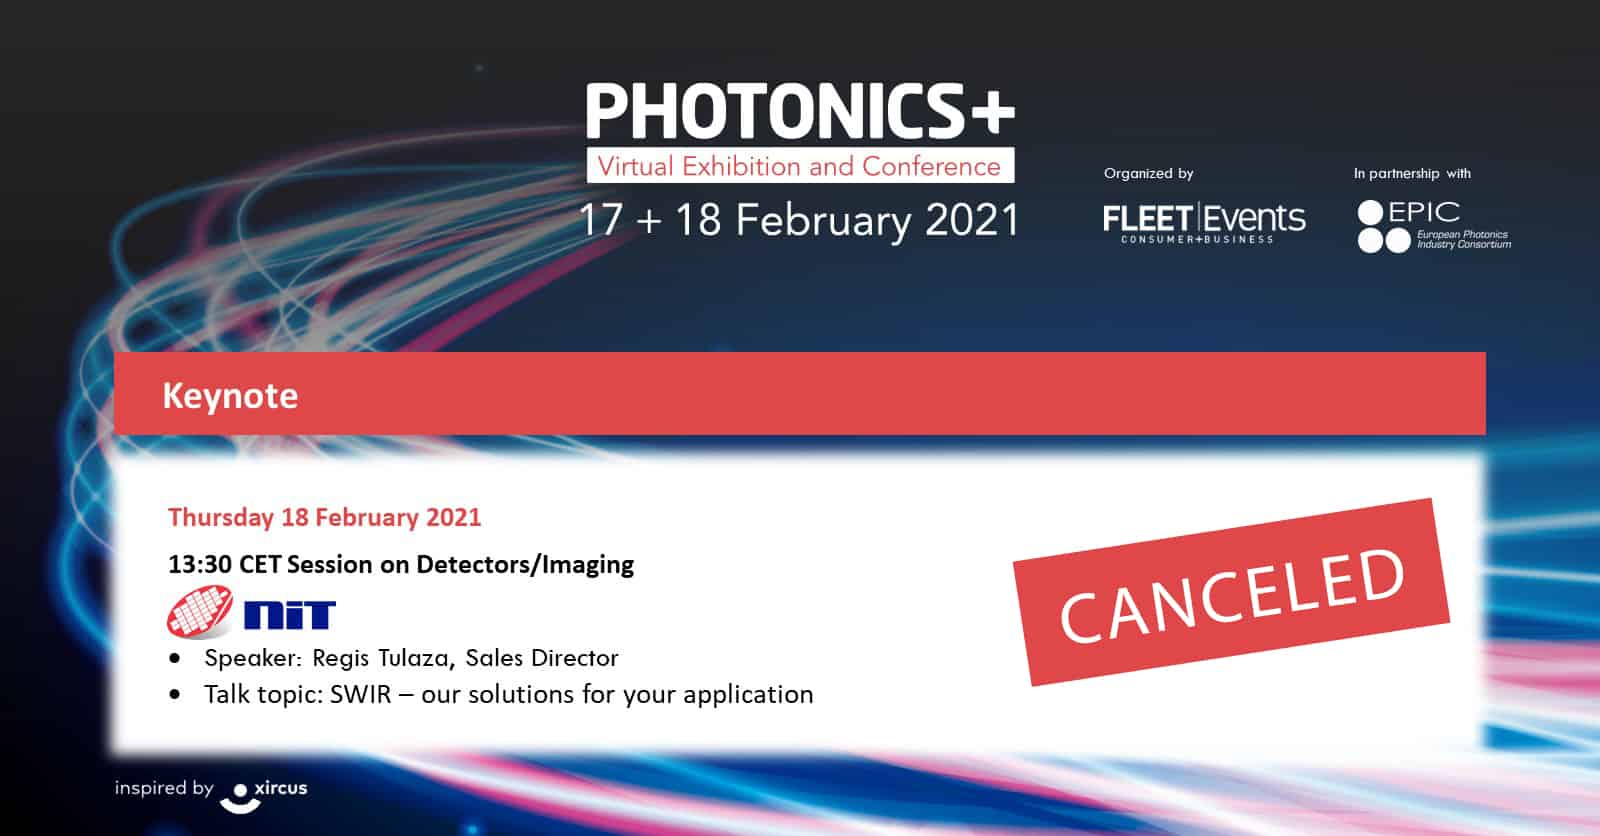 NIT product presentation at PhotonicsPlus was canceled